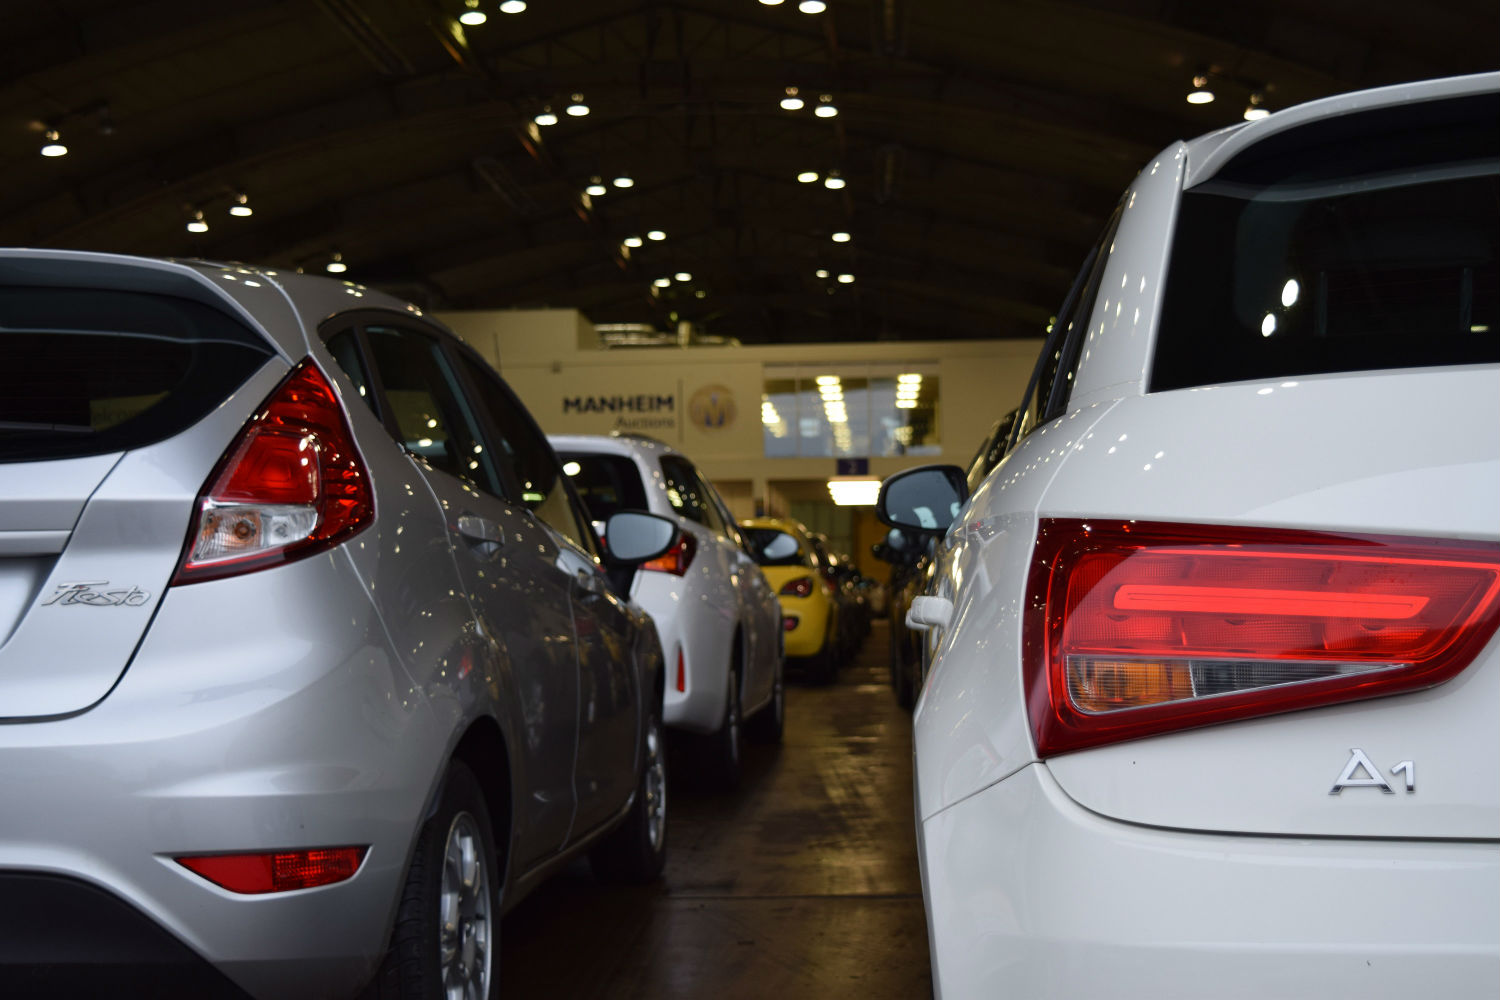 Auction vehicles ready for sale